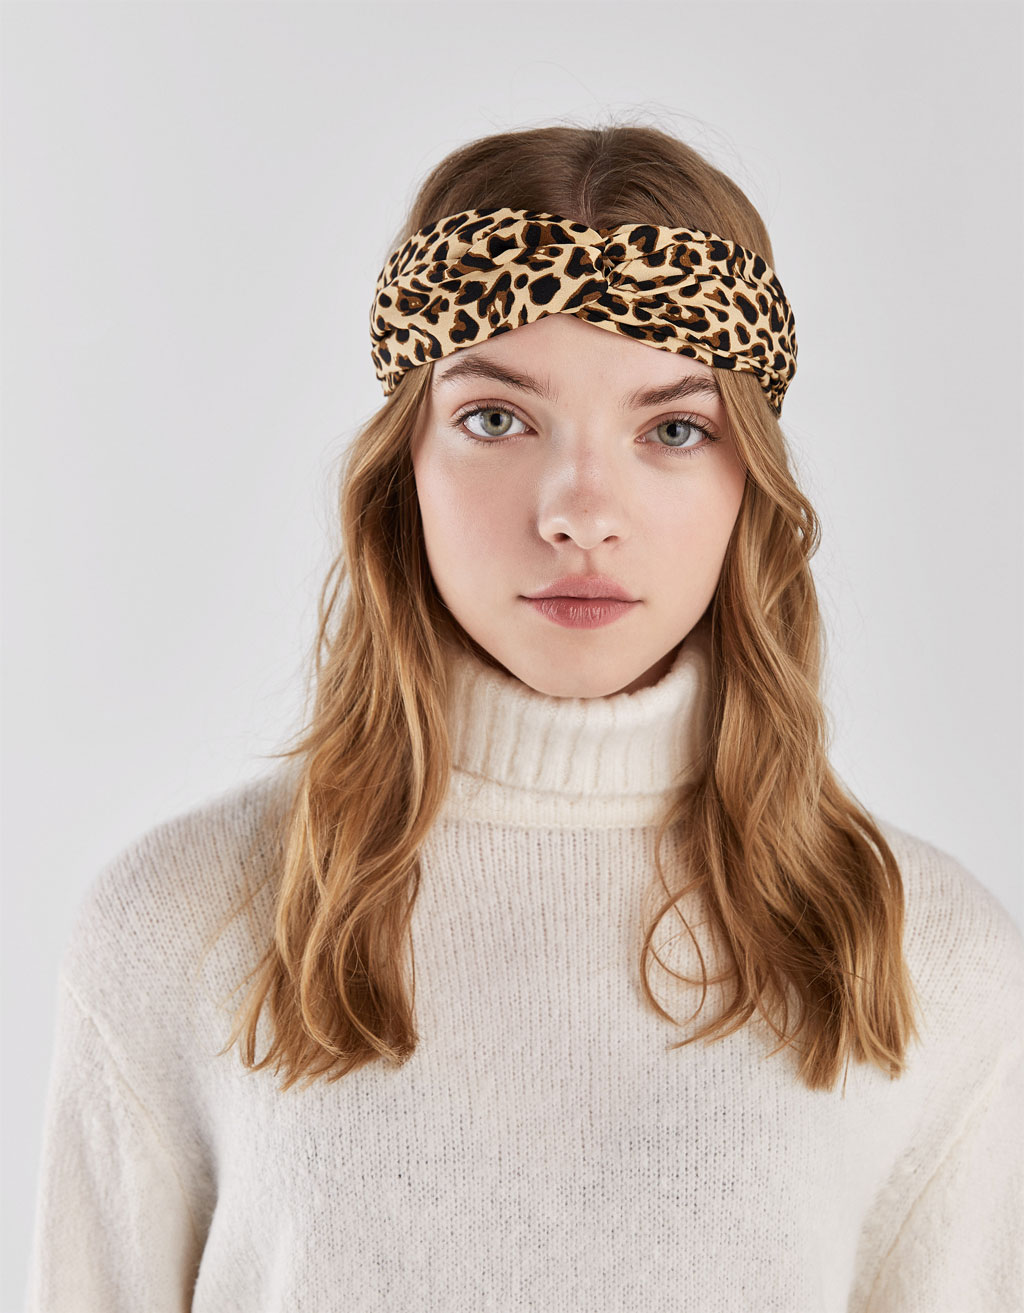 Turbante com estampado de leopardo